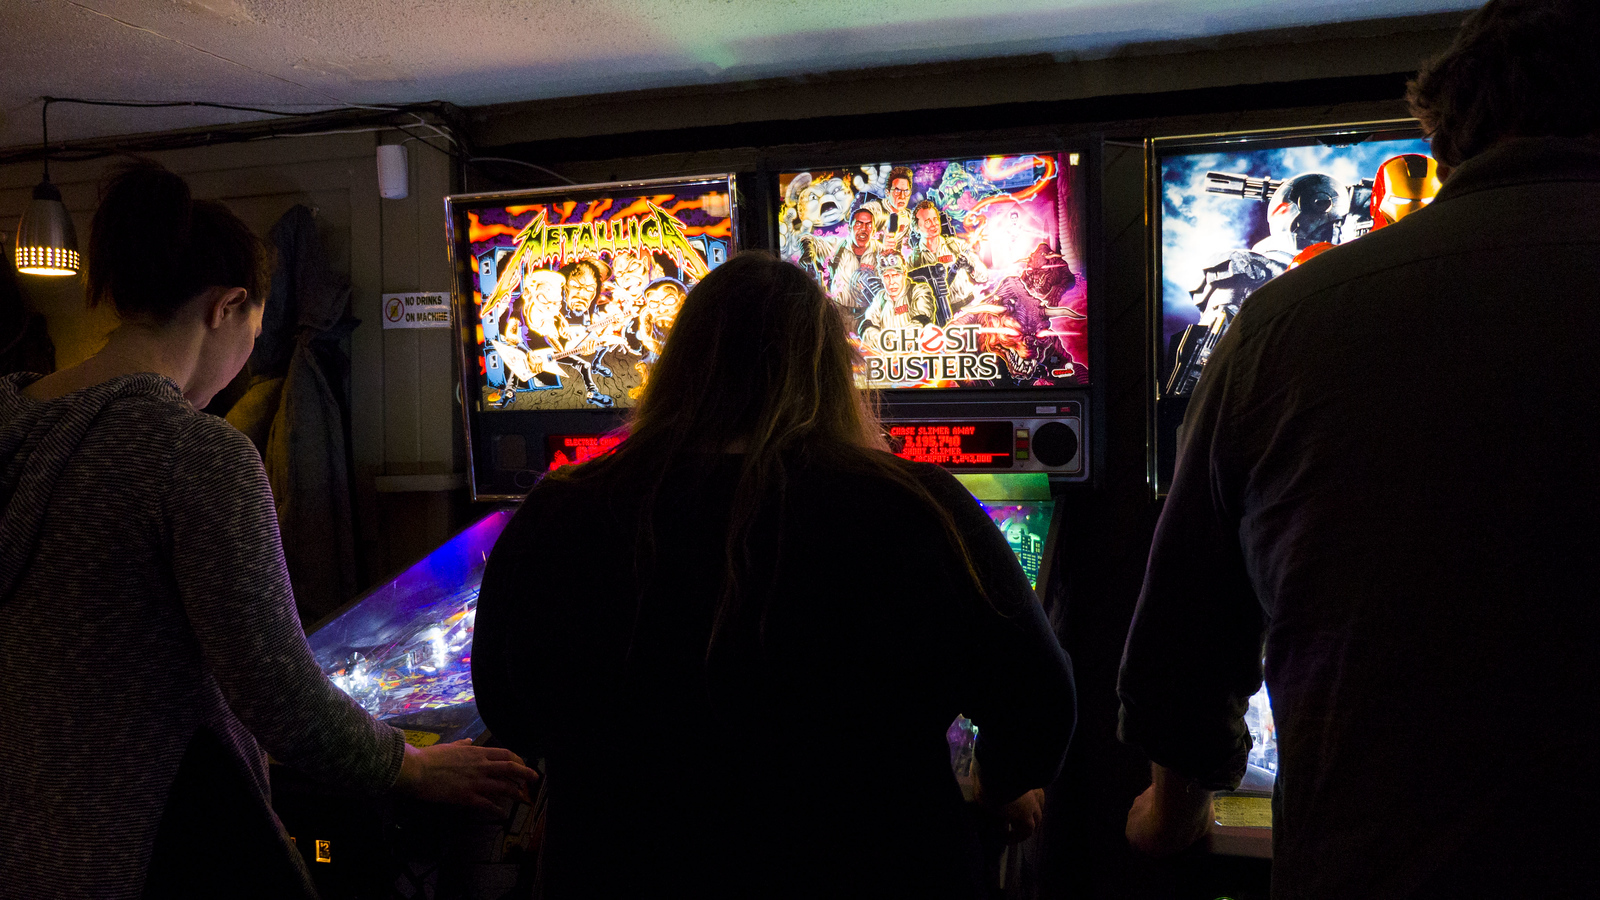 House of Targ - Ottawa's Classic Arcade and Pierogi Restaurant